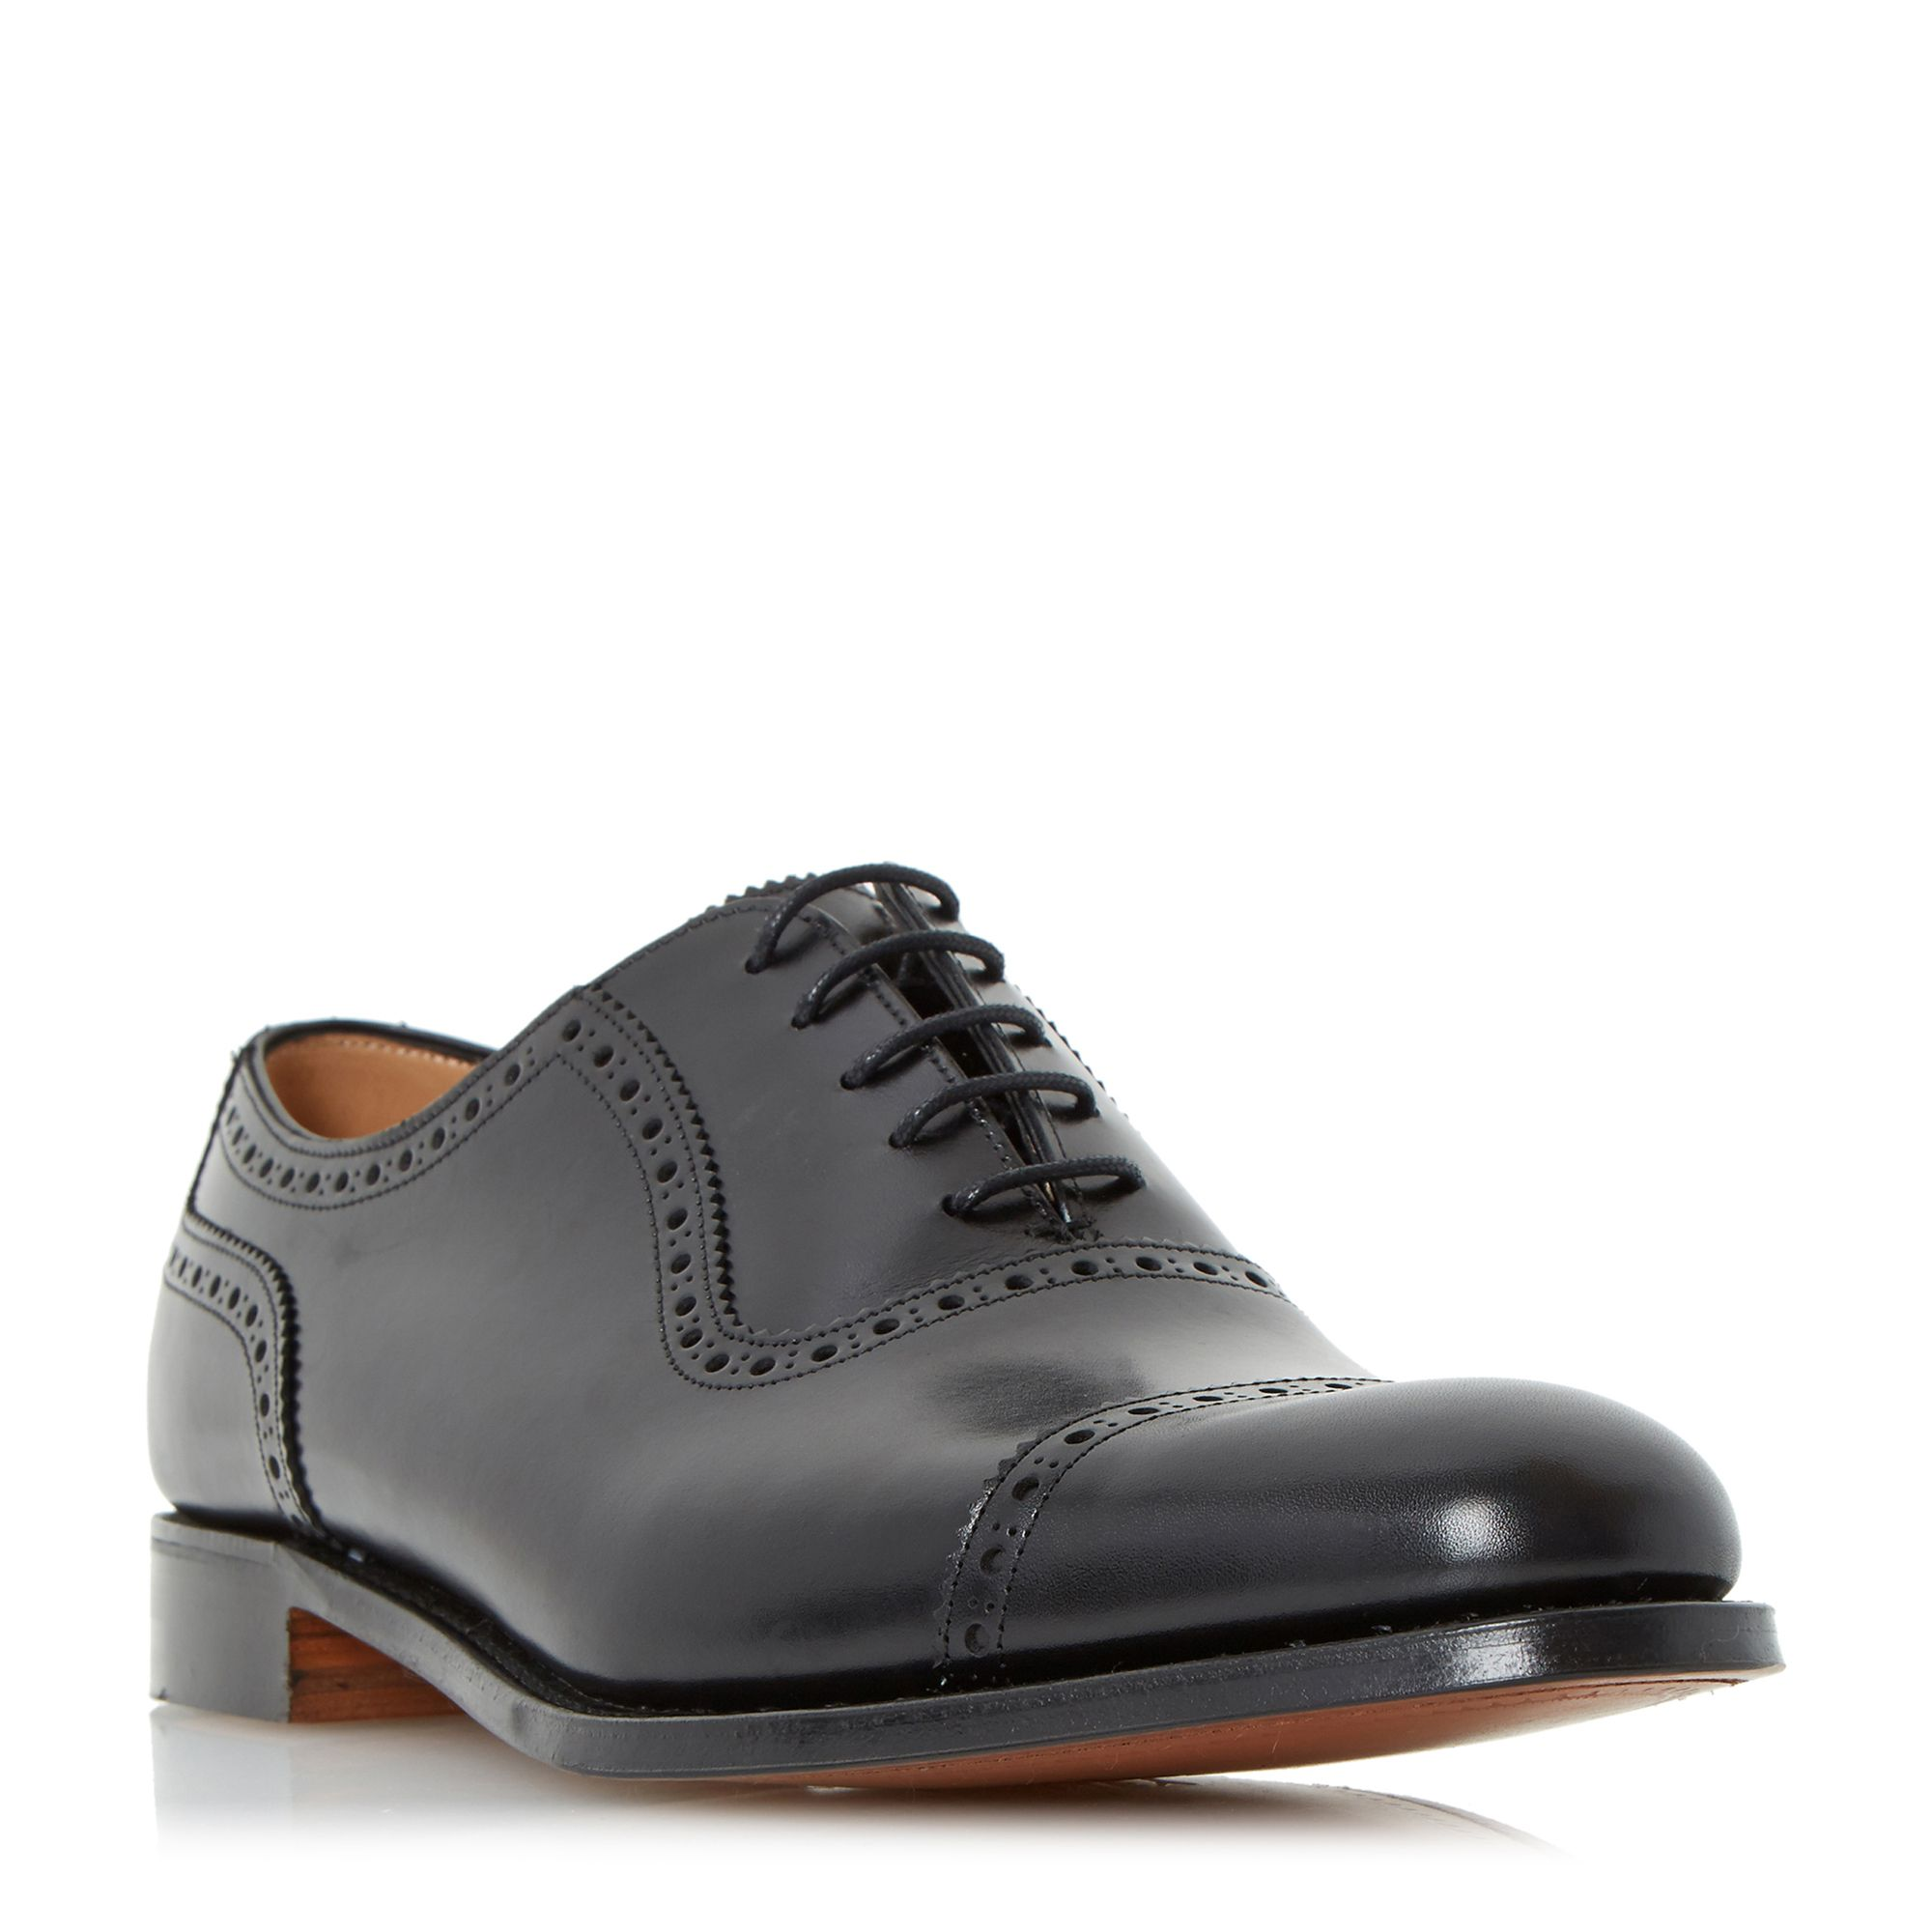 Cheaney Mens Cheaney Mens Fenchurch Oxford Shoes, Black